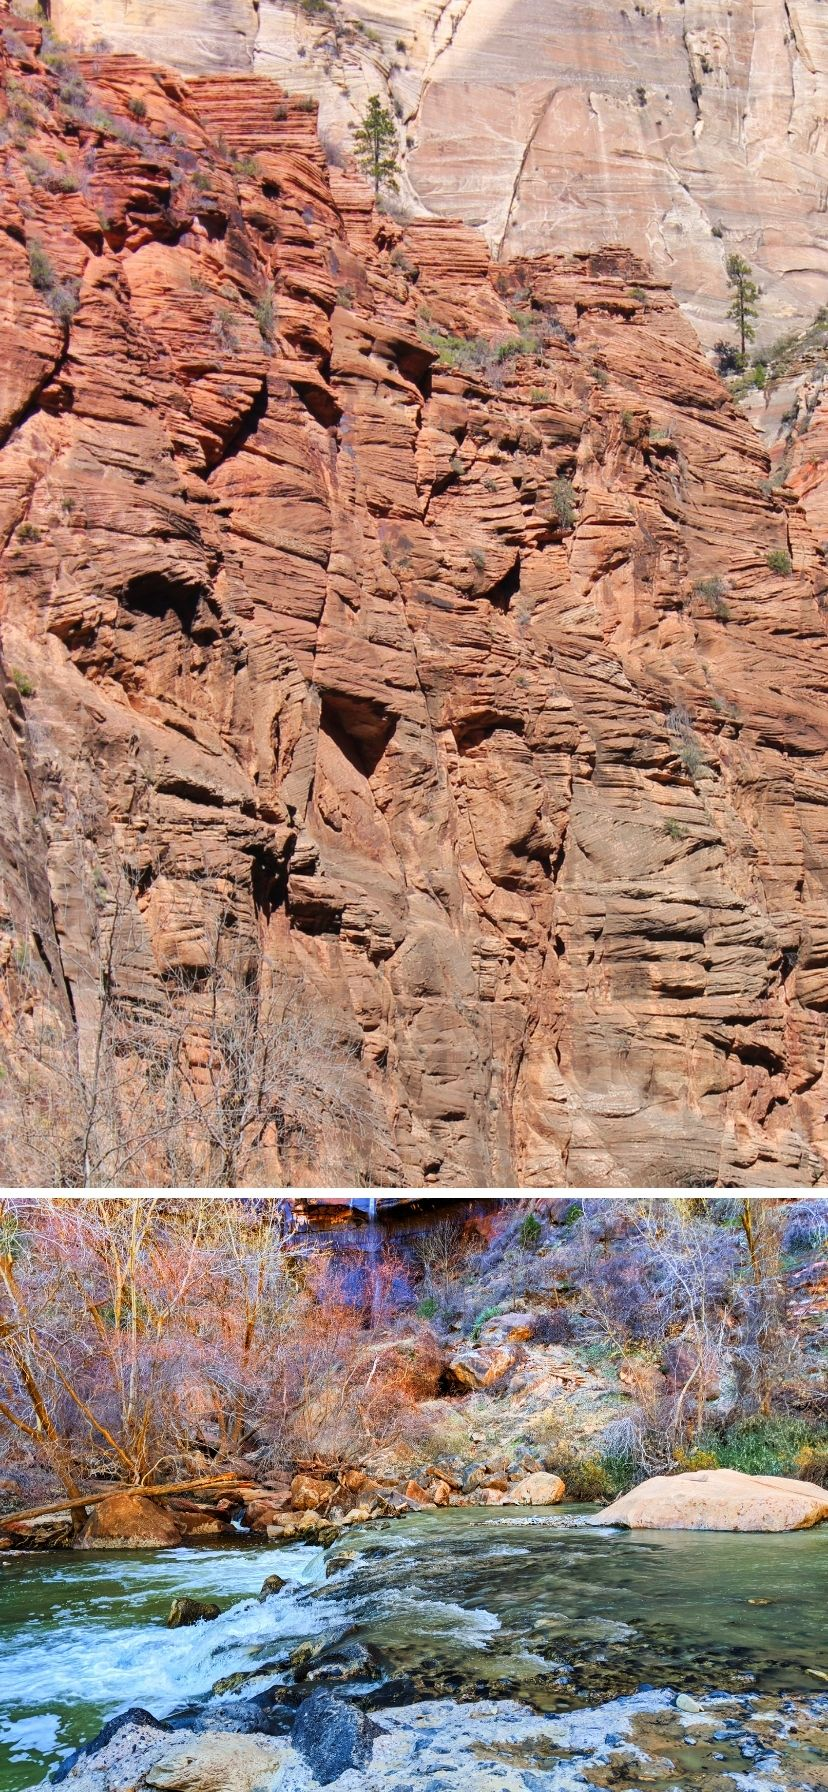 Best hikes in Zion National Park include difficult and kid-friendly hiking. The Narrows, Zion Overlook, Emerald Pools and hiking in Kolob Canyons are just a few. These are the top hikes in Zion NP, UT